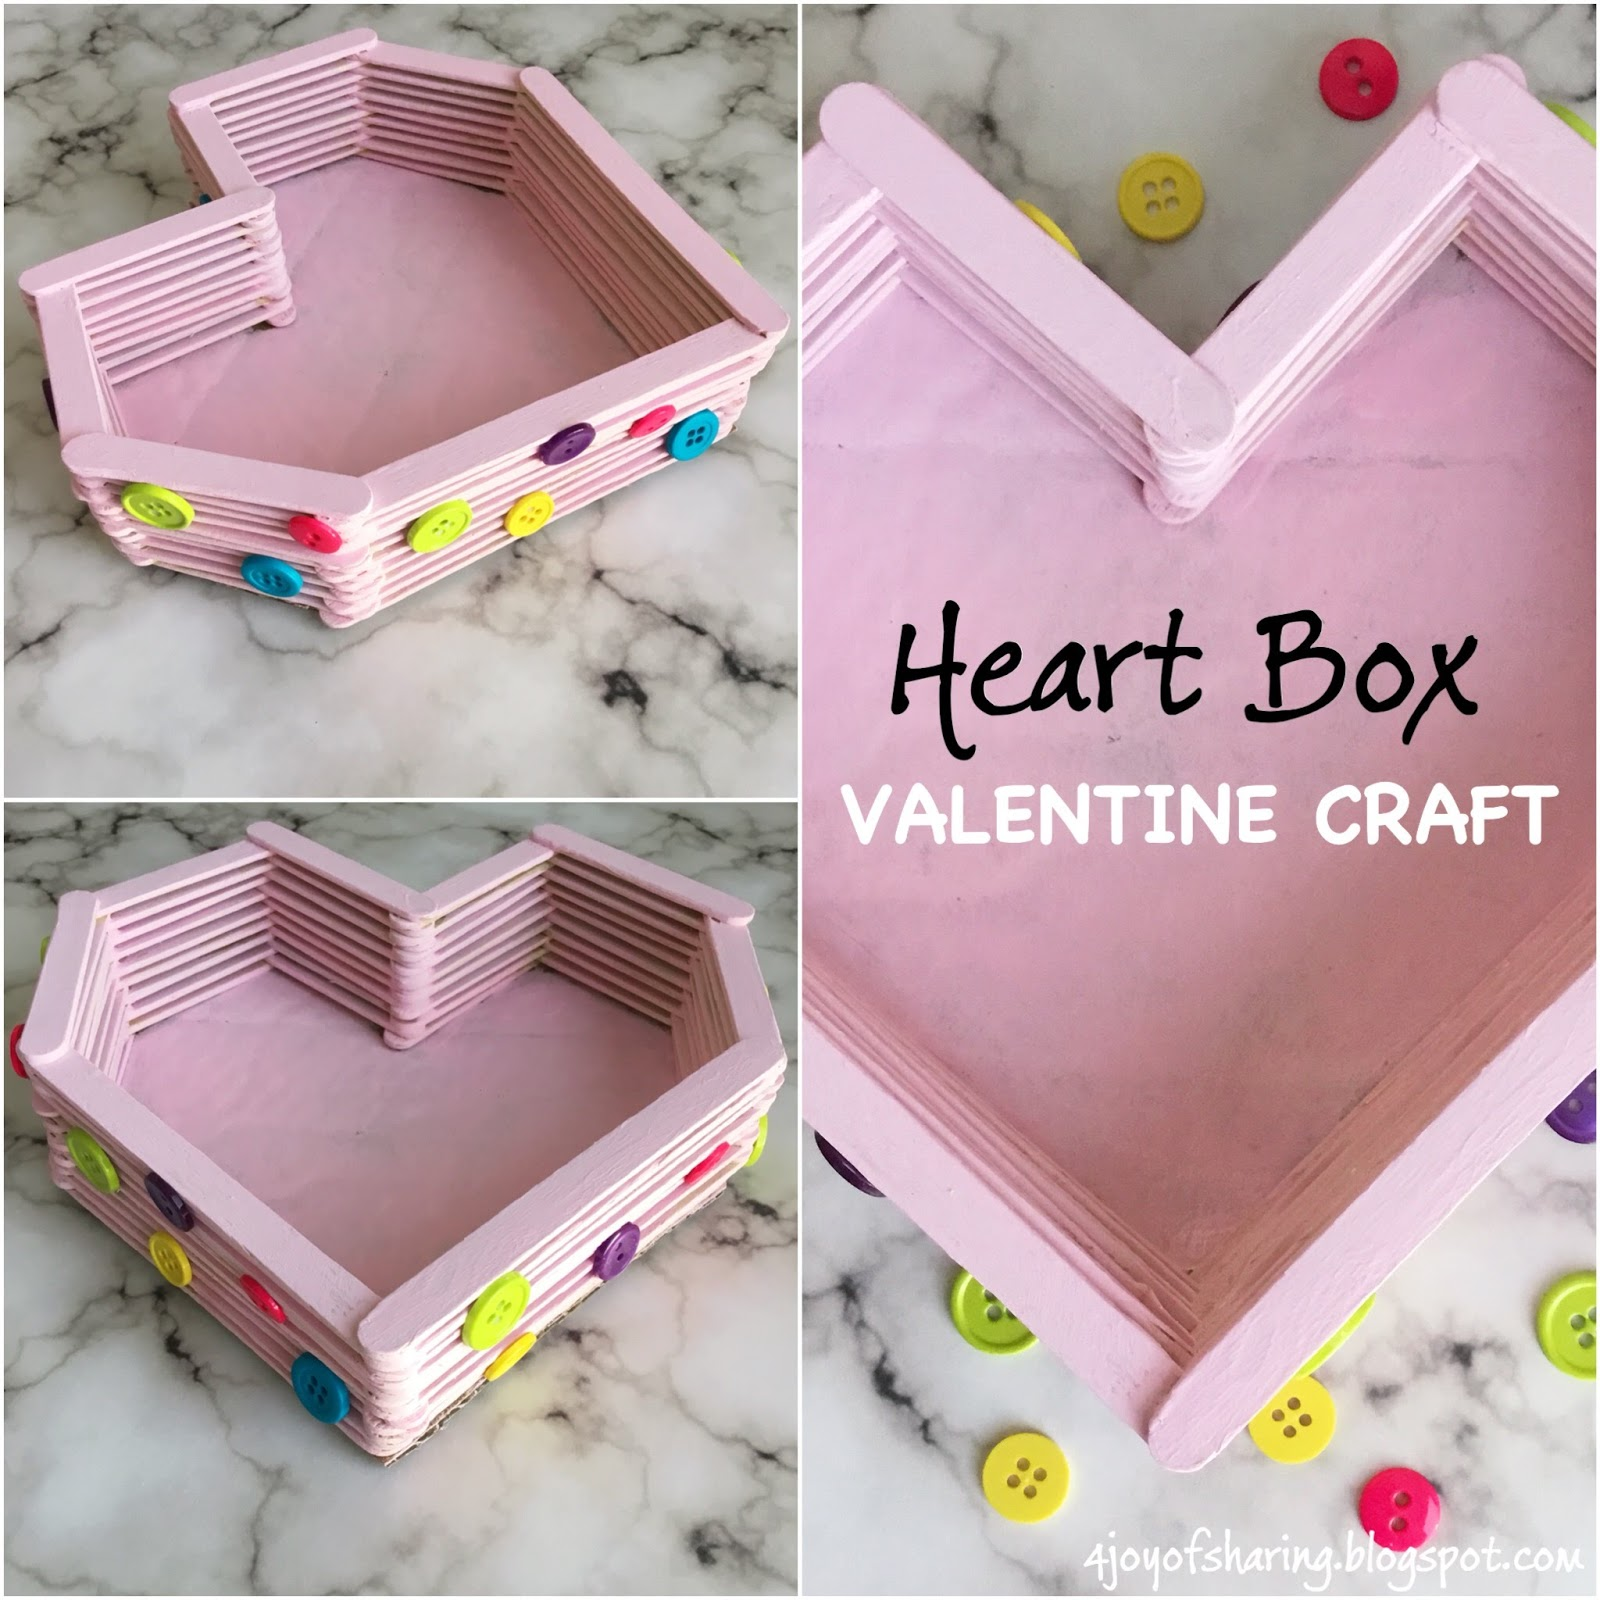 Valentines Day Craft, Valentines Craft, Card Ideas, Simple craft idea, 10 mins craft idea, Kids craft, crafts for kids, craft ideas, kids crafts, craft ideas for kids, paper craft, art projects for kids, easy crafts for kids, fun craft for kids, kids arts and crafts, art activities for kids, kids projects, art and crafts ideas, toddler crafts, toddler fun, preschool craft ideas, kindergarten crafts, crafts for young kids, school crafts, Easy DIY for kids, DIY, Home Decor, Wood Stick Craft, Heart craft